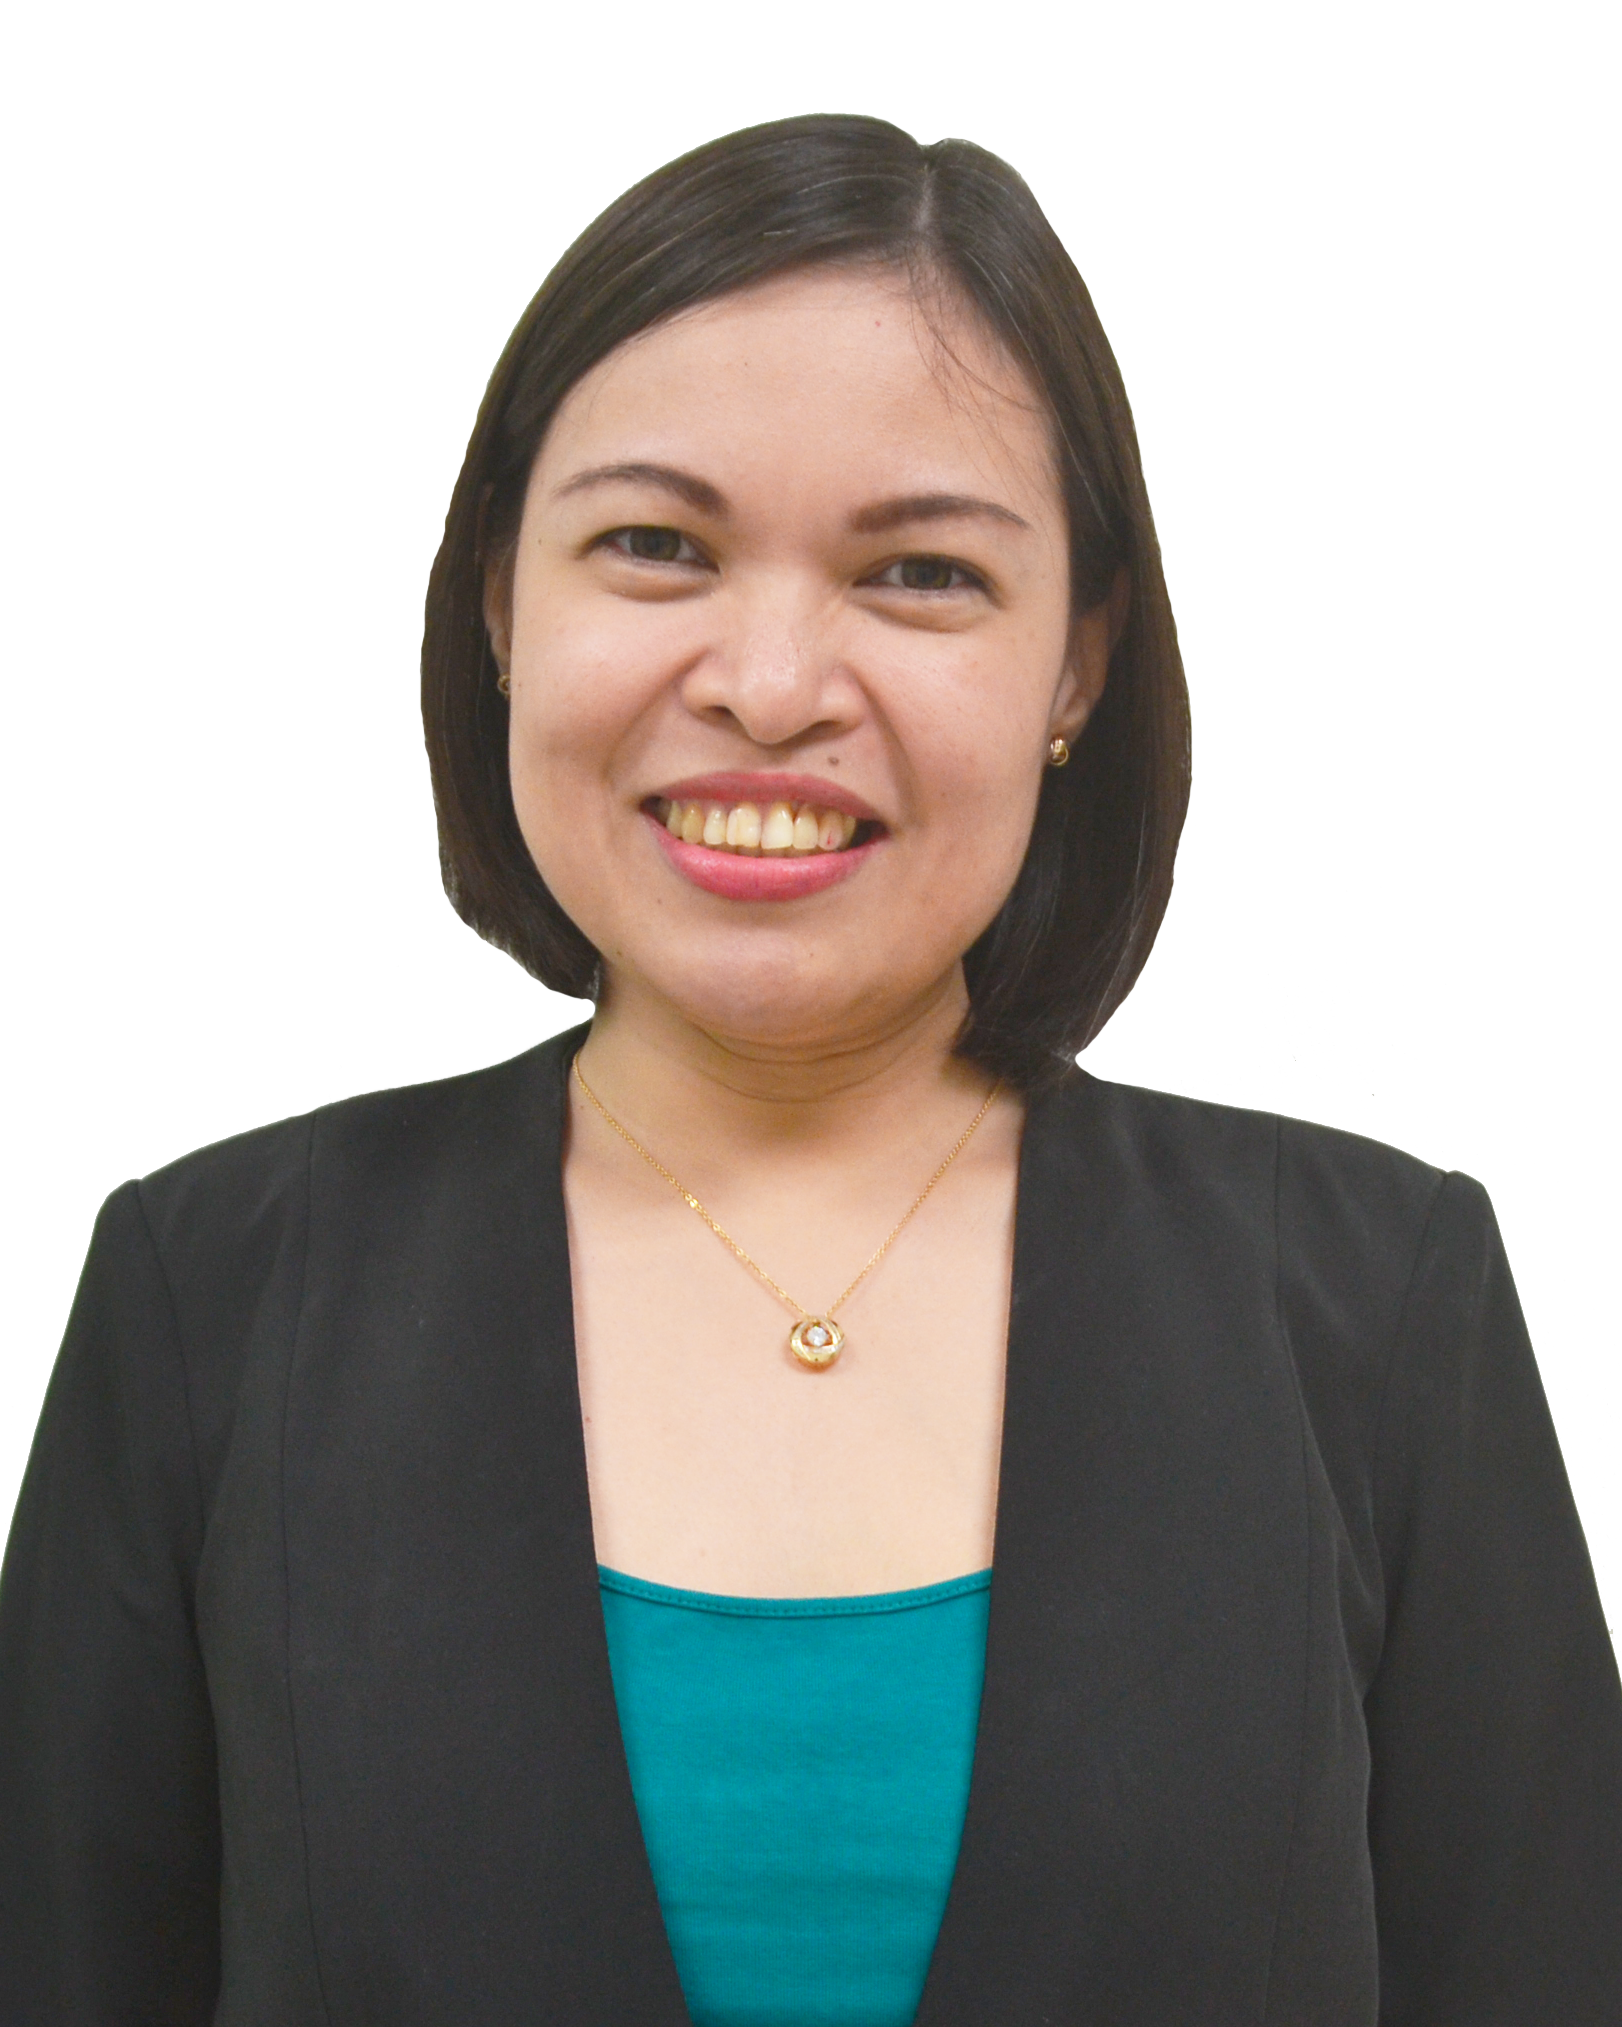 MONET CONCEPCION M. DETRAS, Ph.D.